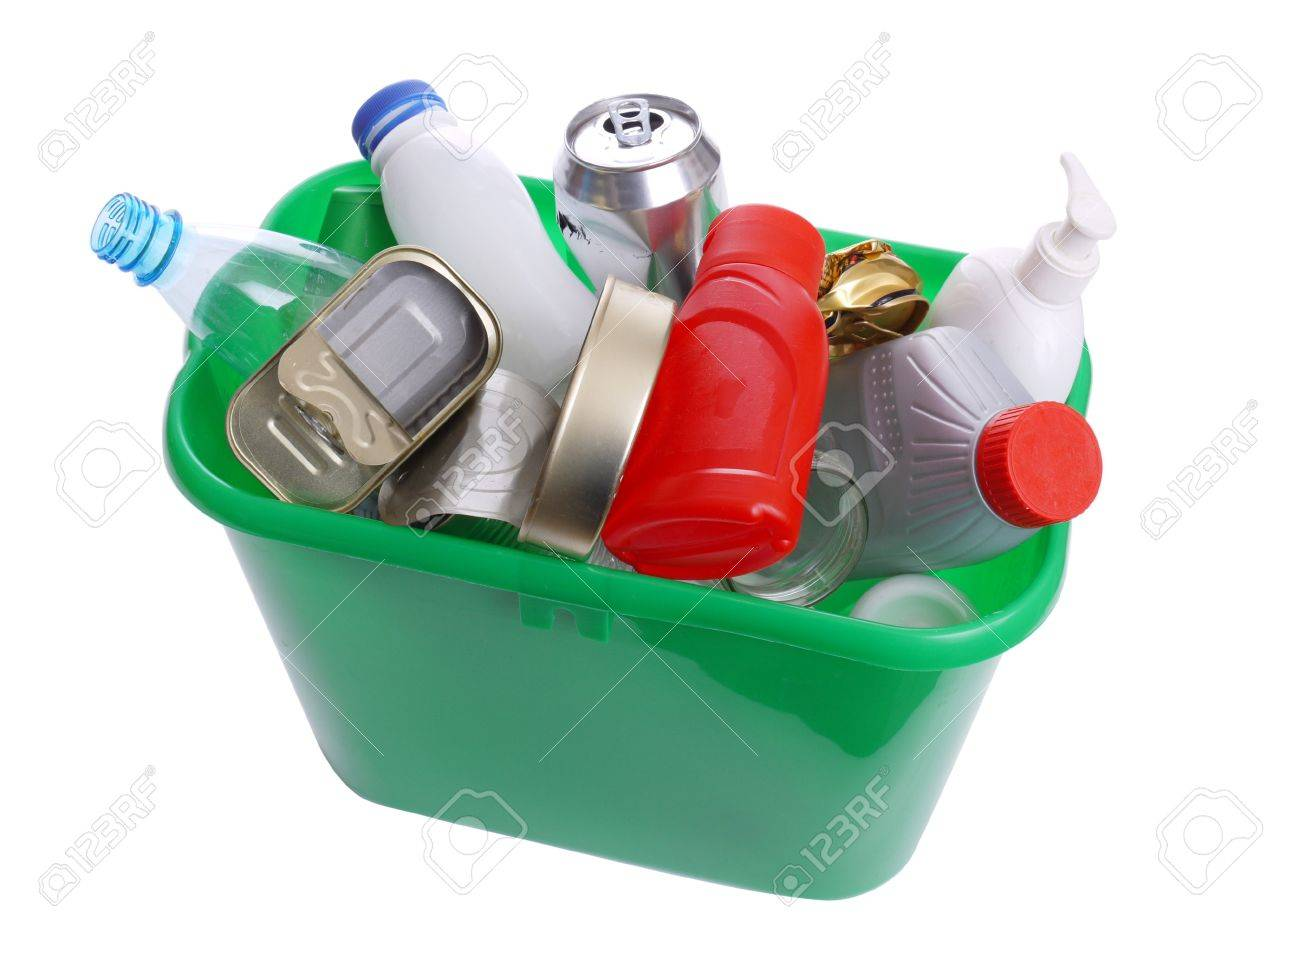 Green plastic trash bin filled with assorted domestic garbage - over white background Stock Photo - 4252558